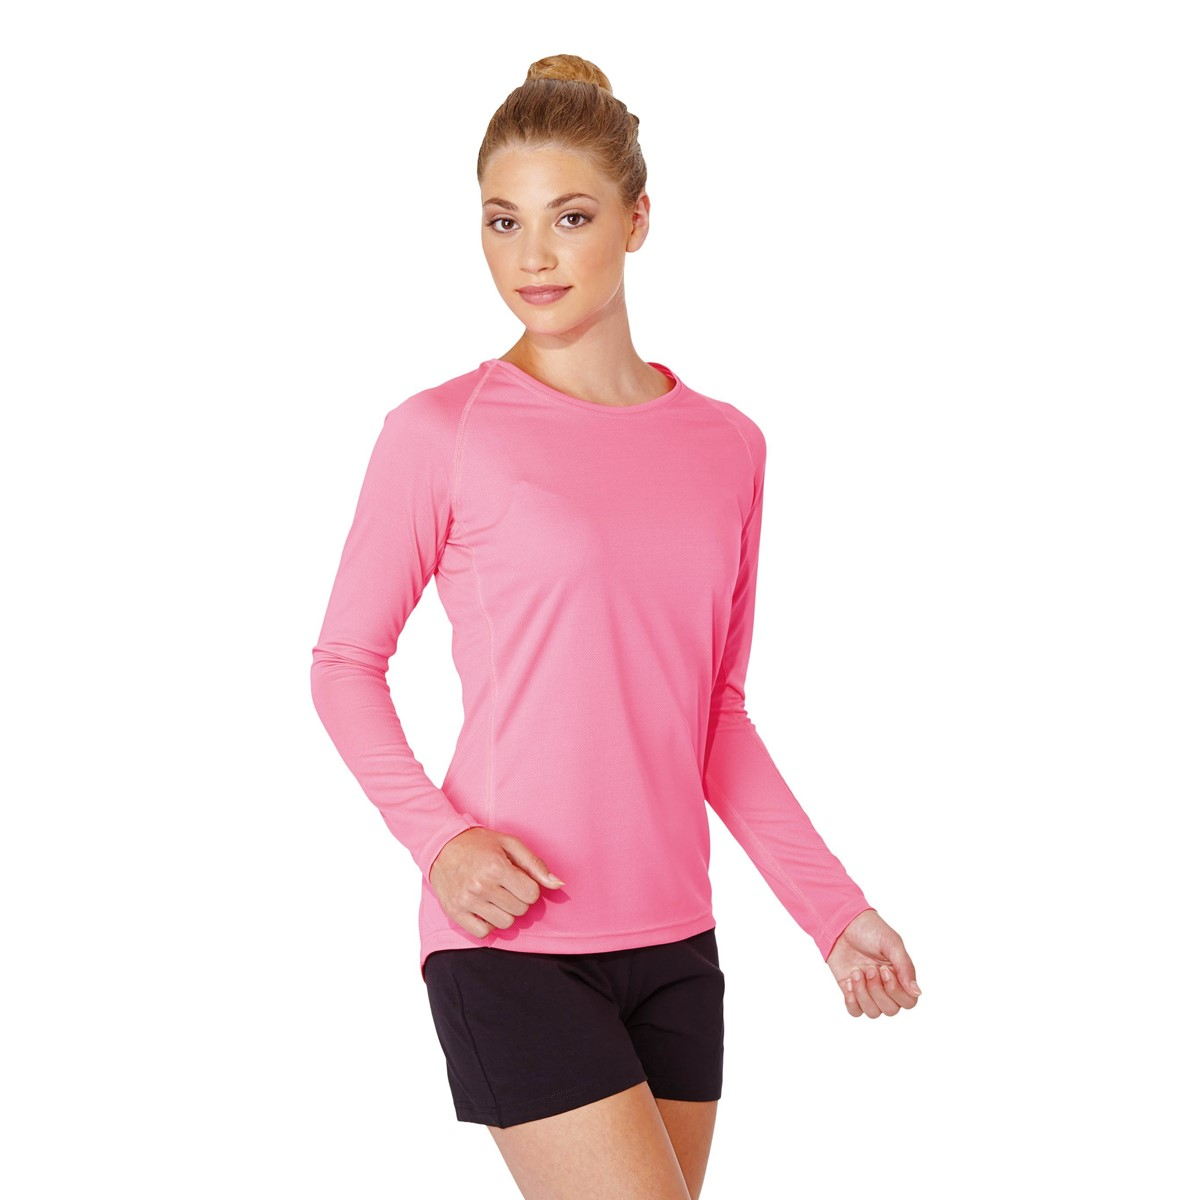 Long sleeve blouses and button-front tops are usually more formal while long sleeve graphic t-shirts and hoodies are more casual. Depending on the style and color, cardigans, sweatshirts, and pullovers can be dressed up or down.